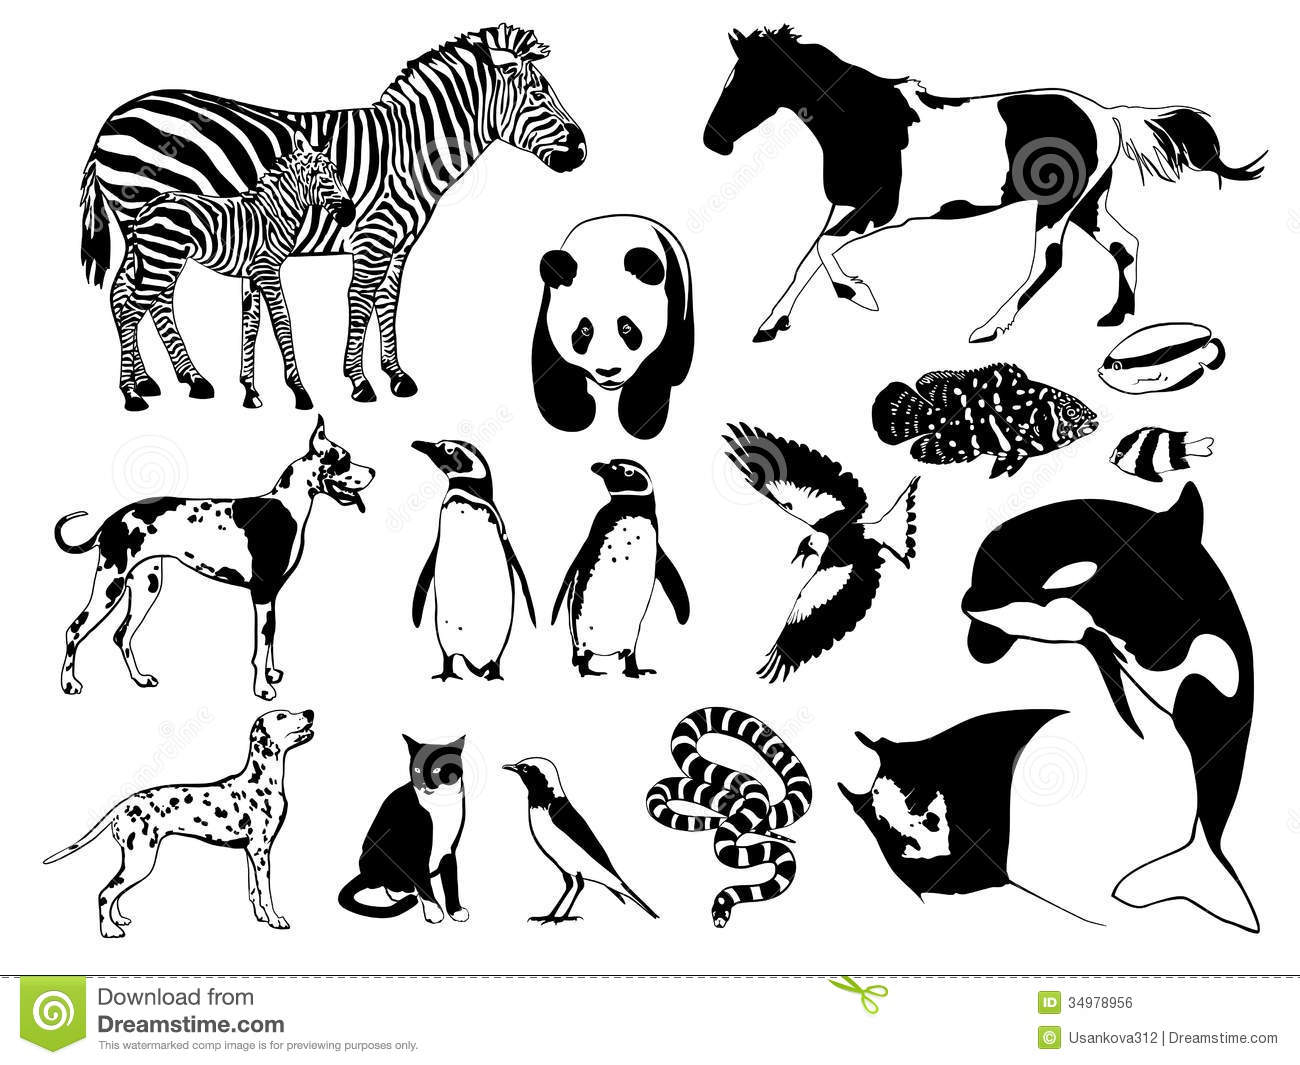 Black and white animals stock vector. Illustration of flying.